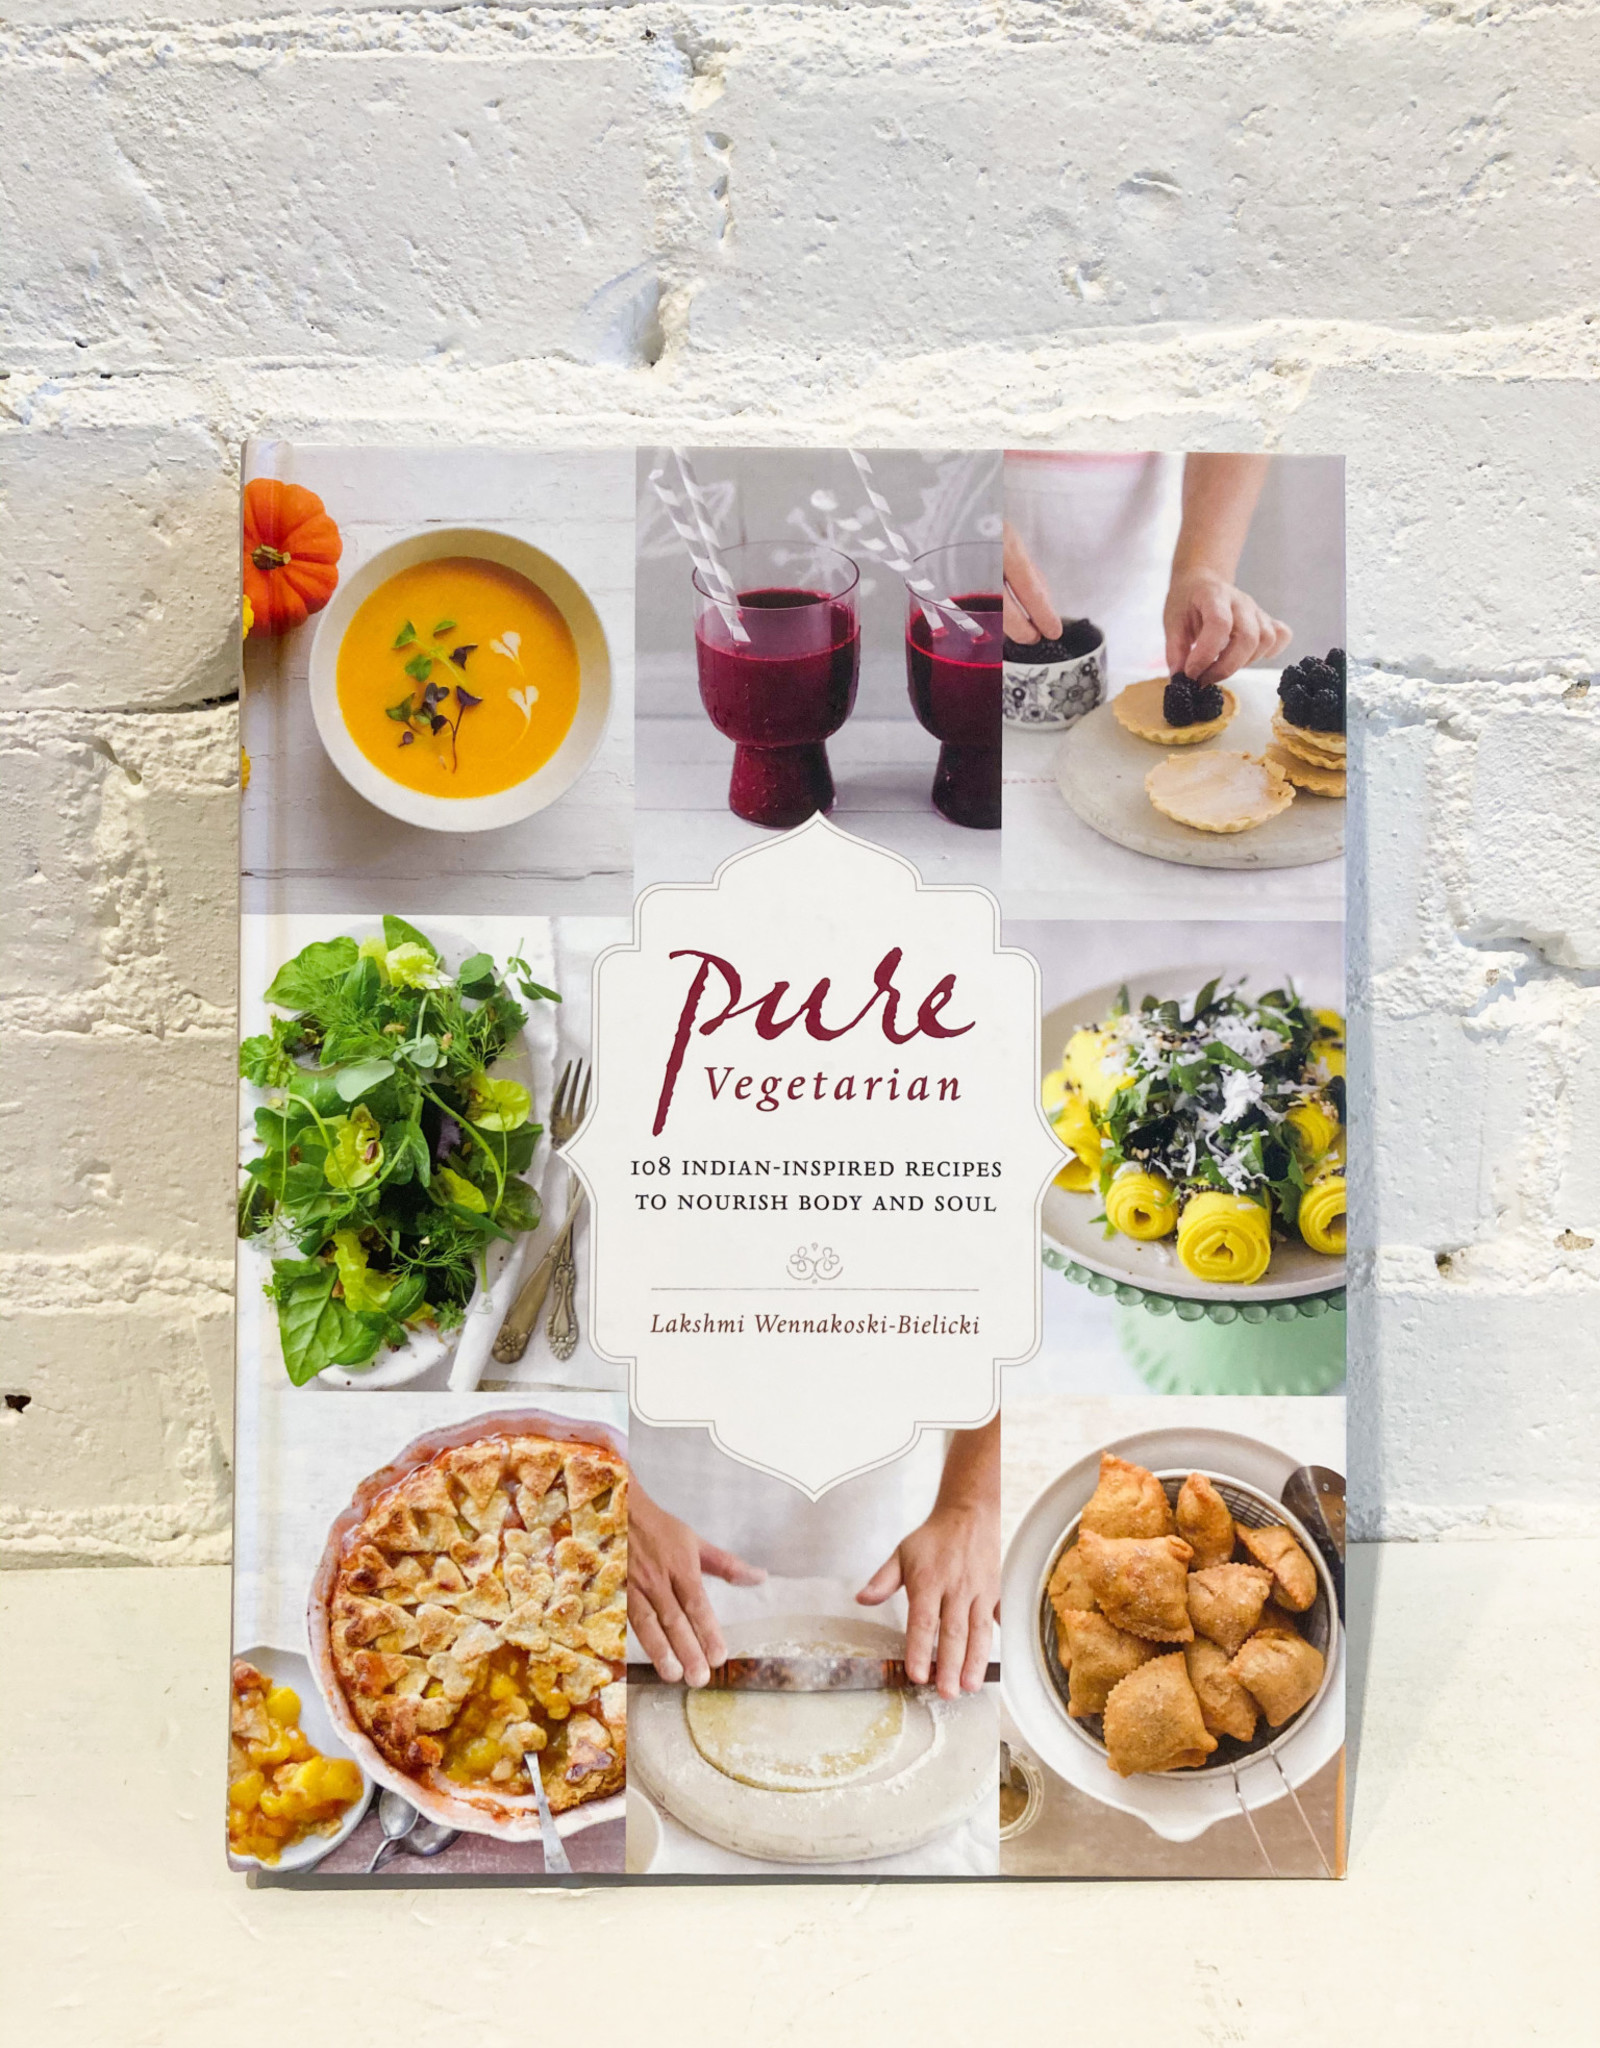 Pure Vegetarian: 108 Indian-Inspired Recipes to Nourish Body and Soul by Lakshmi Wennakoski-Bielicki